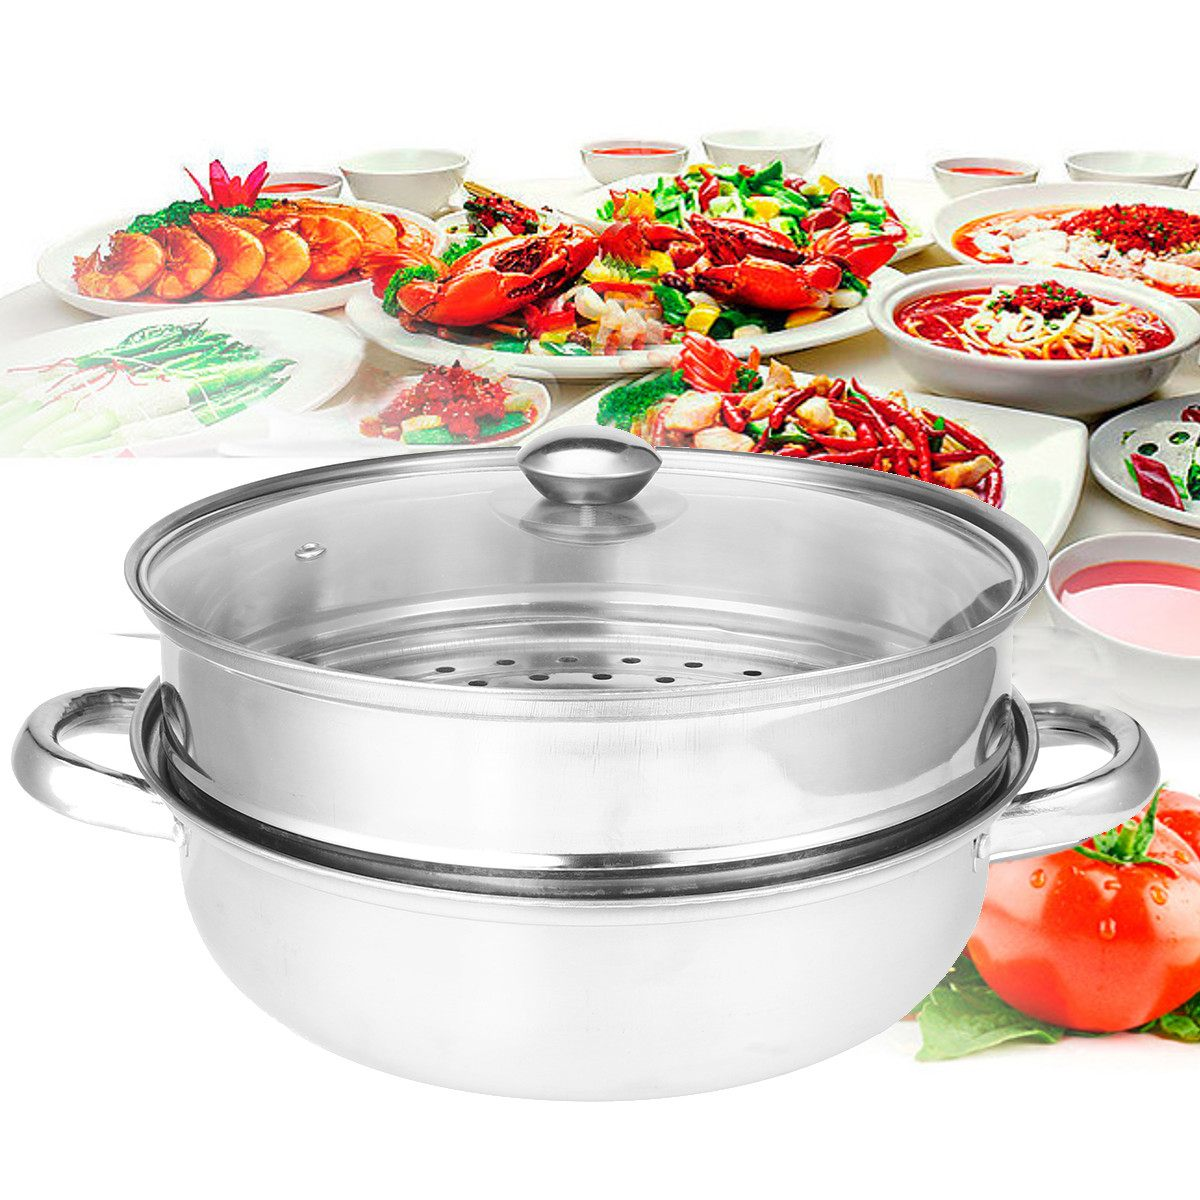 2 Tiers Food Steamer Pot Steaming Cookware Kitchen Tool Todays Specials Stainless Steel